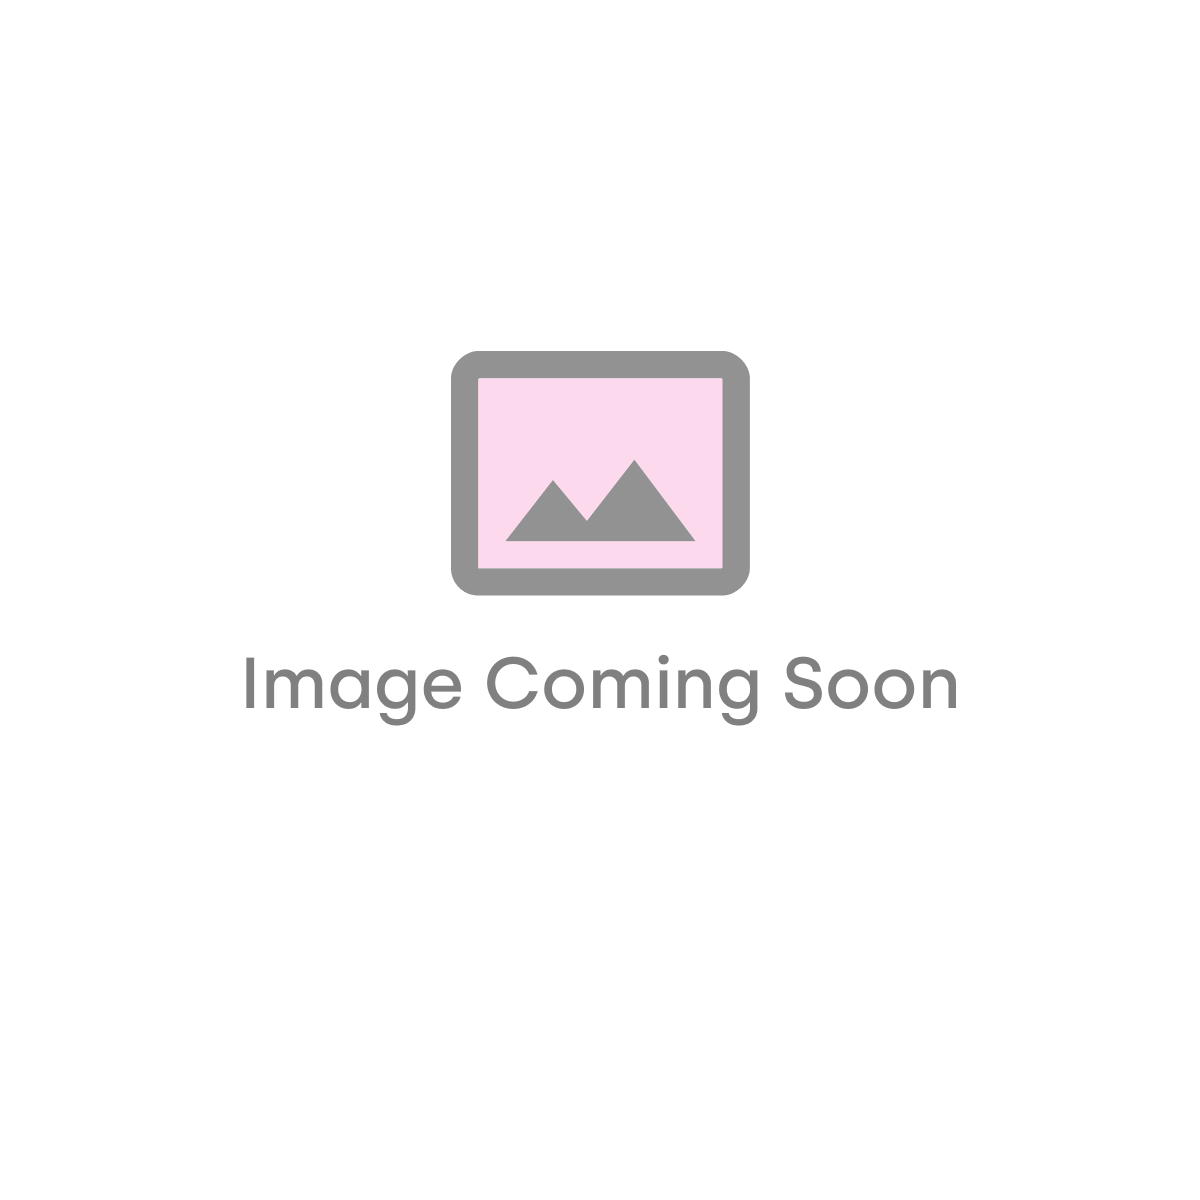 Ainhoa Blue 25 x 75cm Ceramic Tile - 1.12sqm perbox (18690)